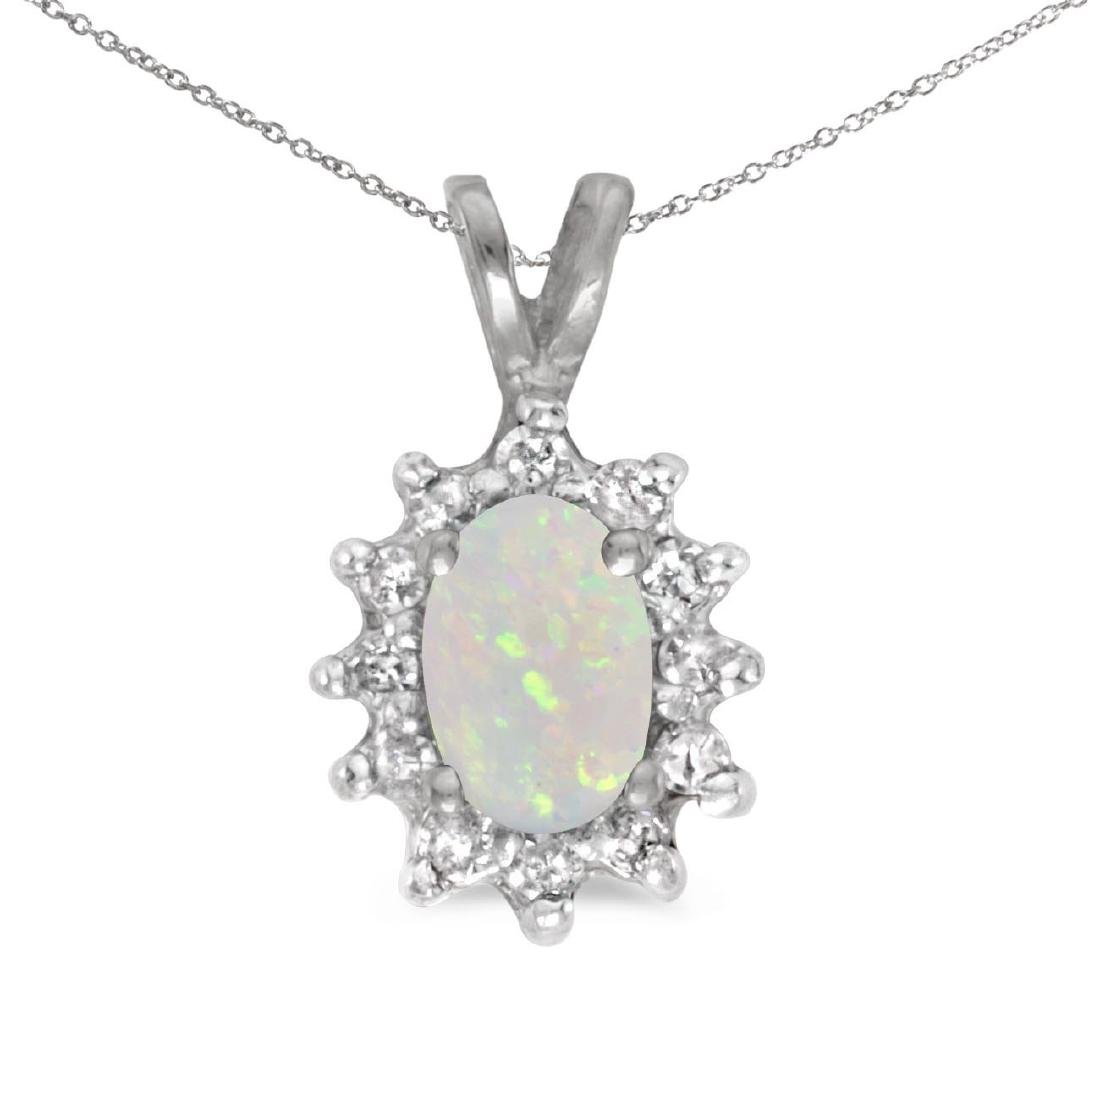 Certified 10k White Gold Oval Opal And Diamond Pendant